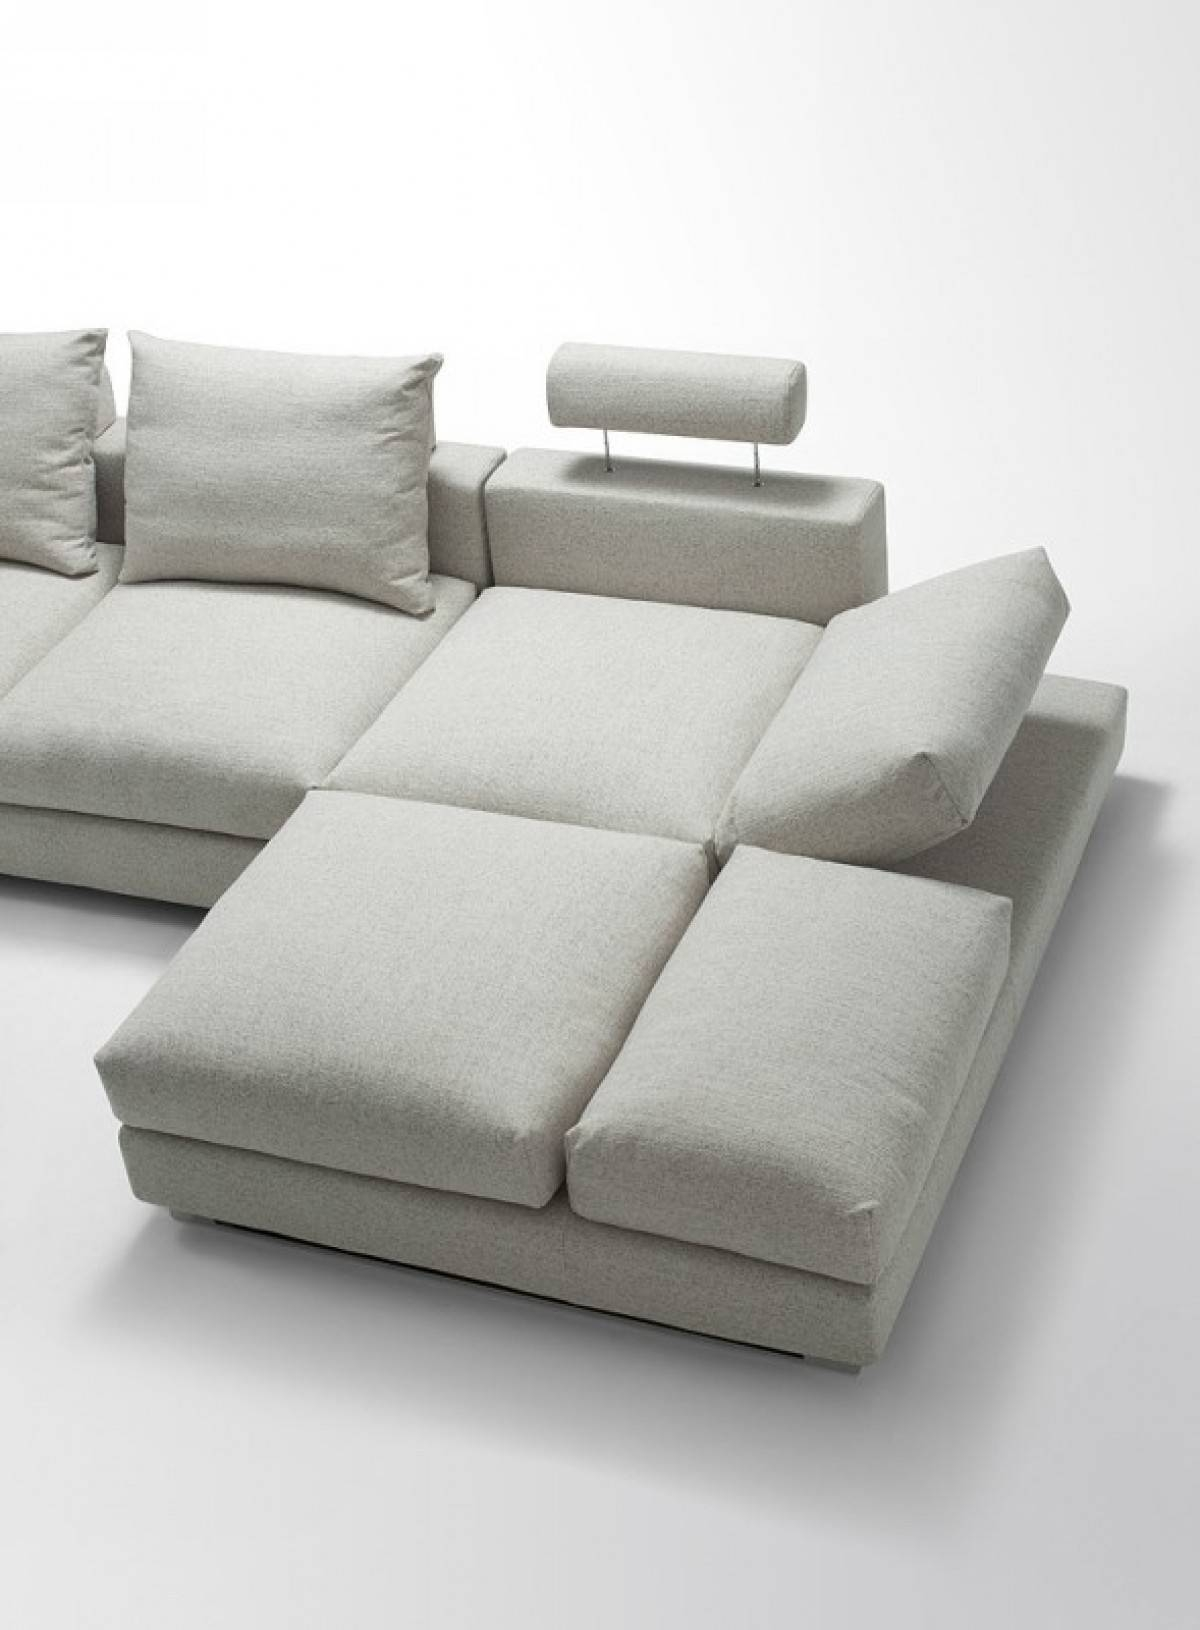 12 Best Ideas Of Down Feather Sectional Sofa with Down Feather Sectional Sofa (Image 3 of 30)